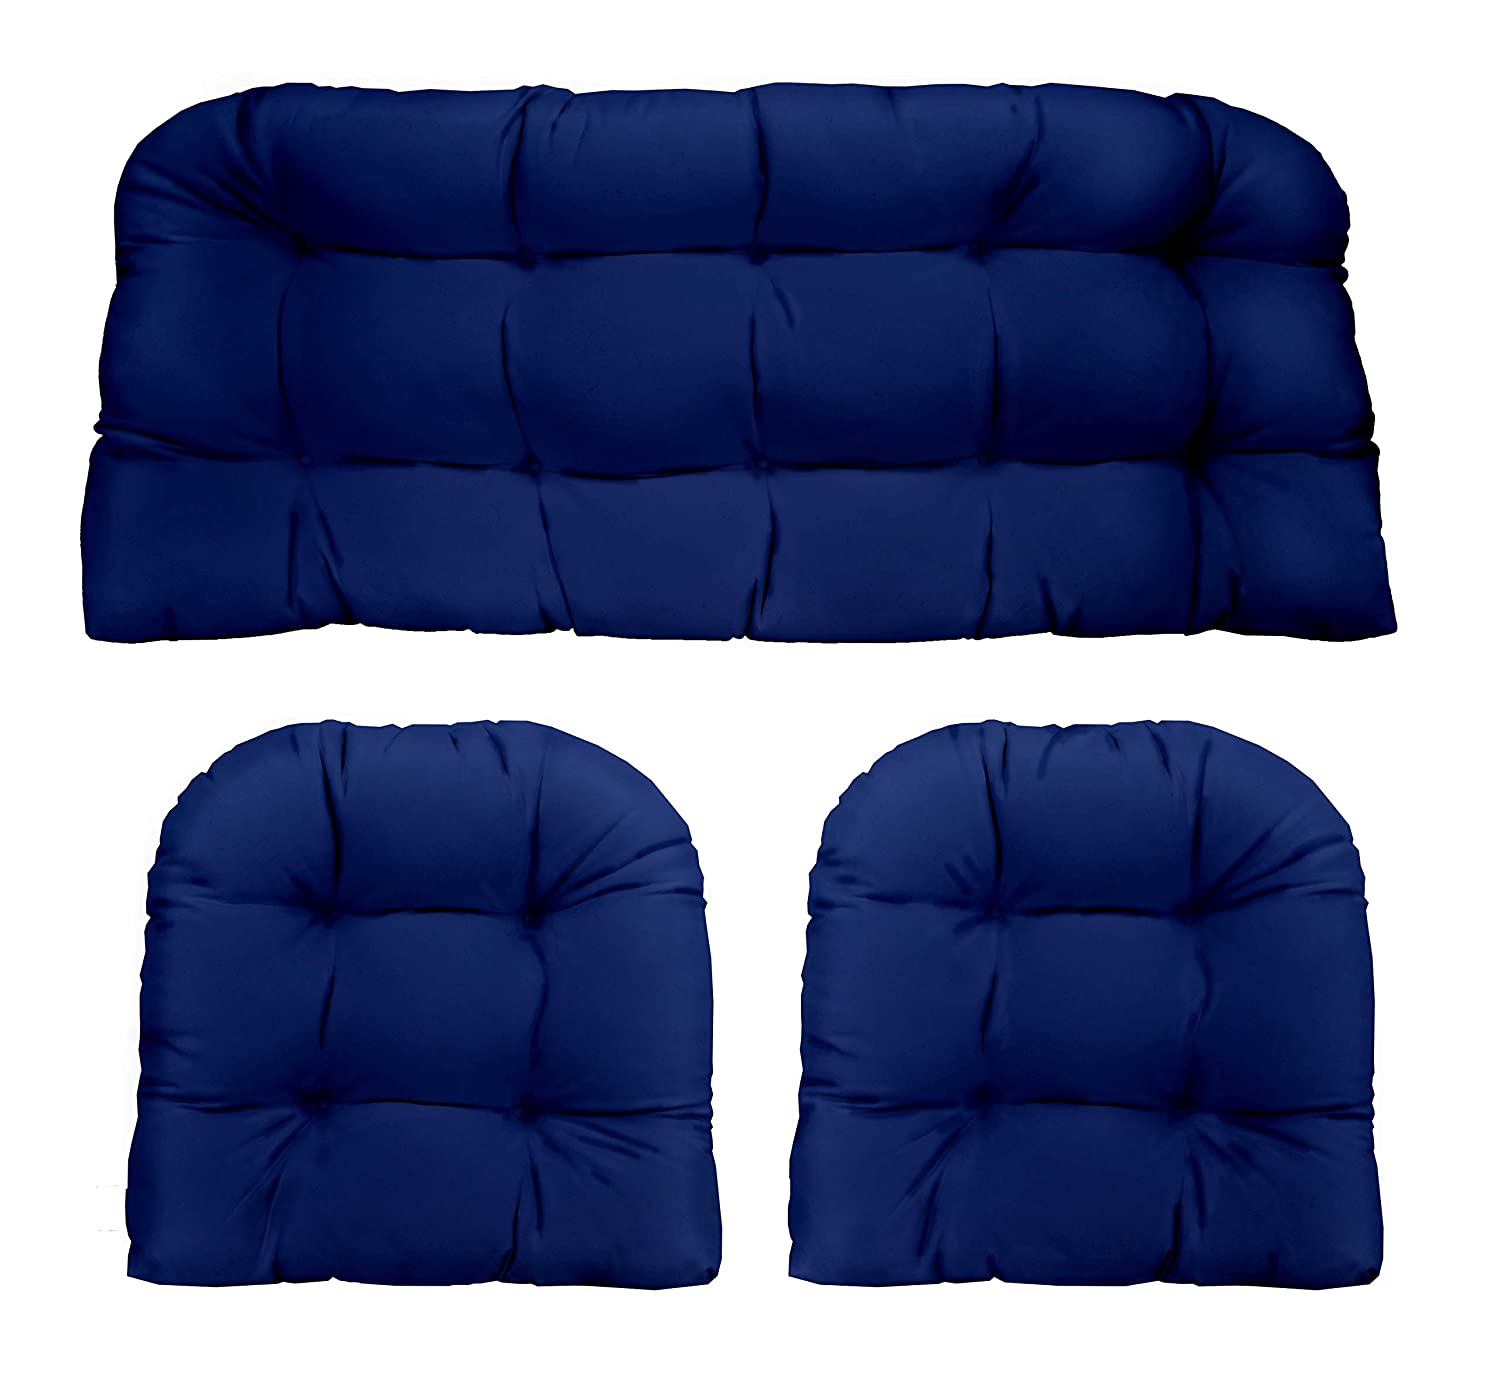 Resort Spa Home Decor Royal Cobalt Blue Solid Fabric Cushions for Wicker Loveseat Settee 2 Matching Chair Cushions